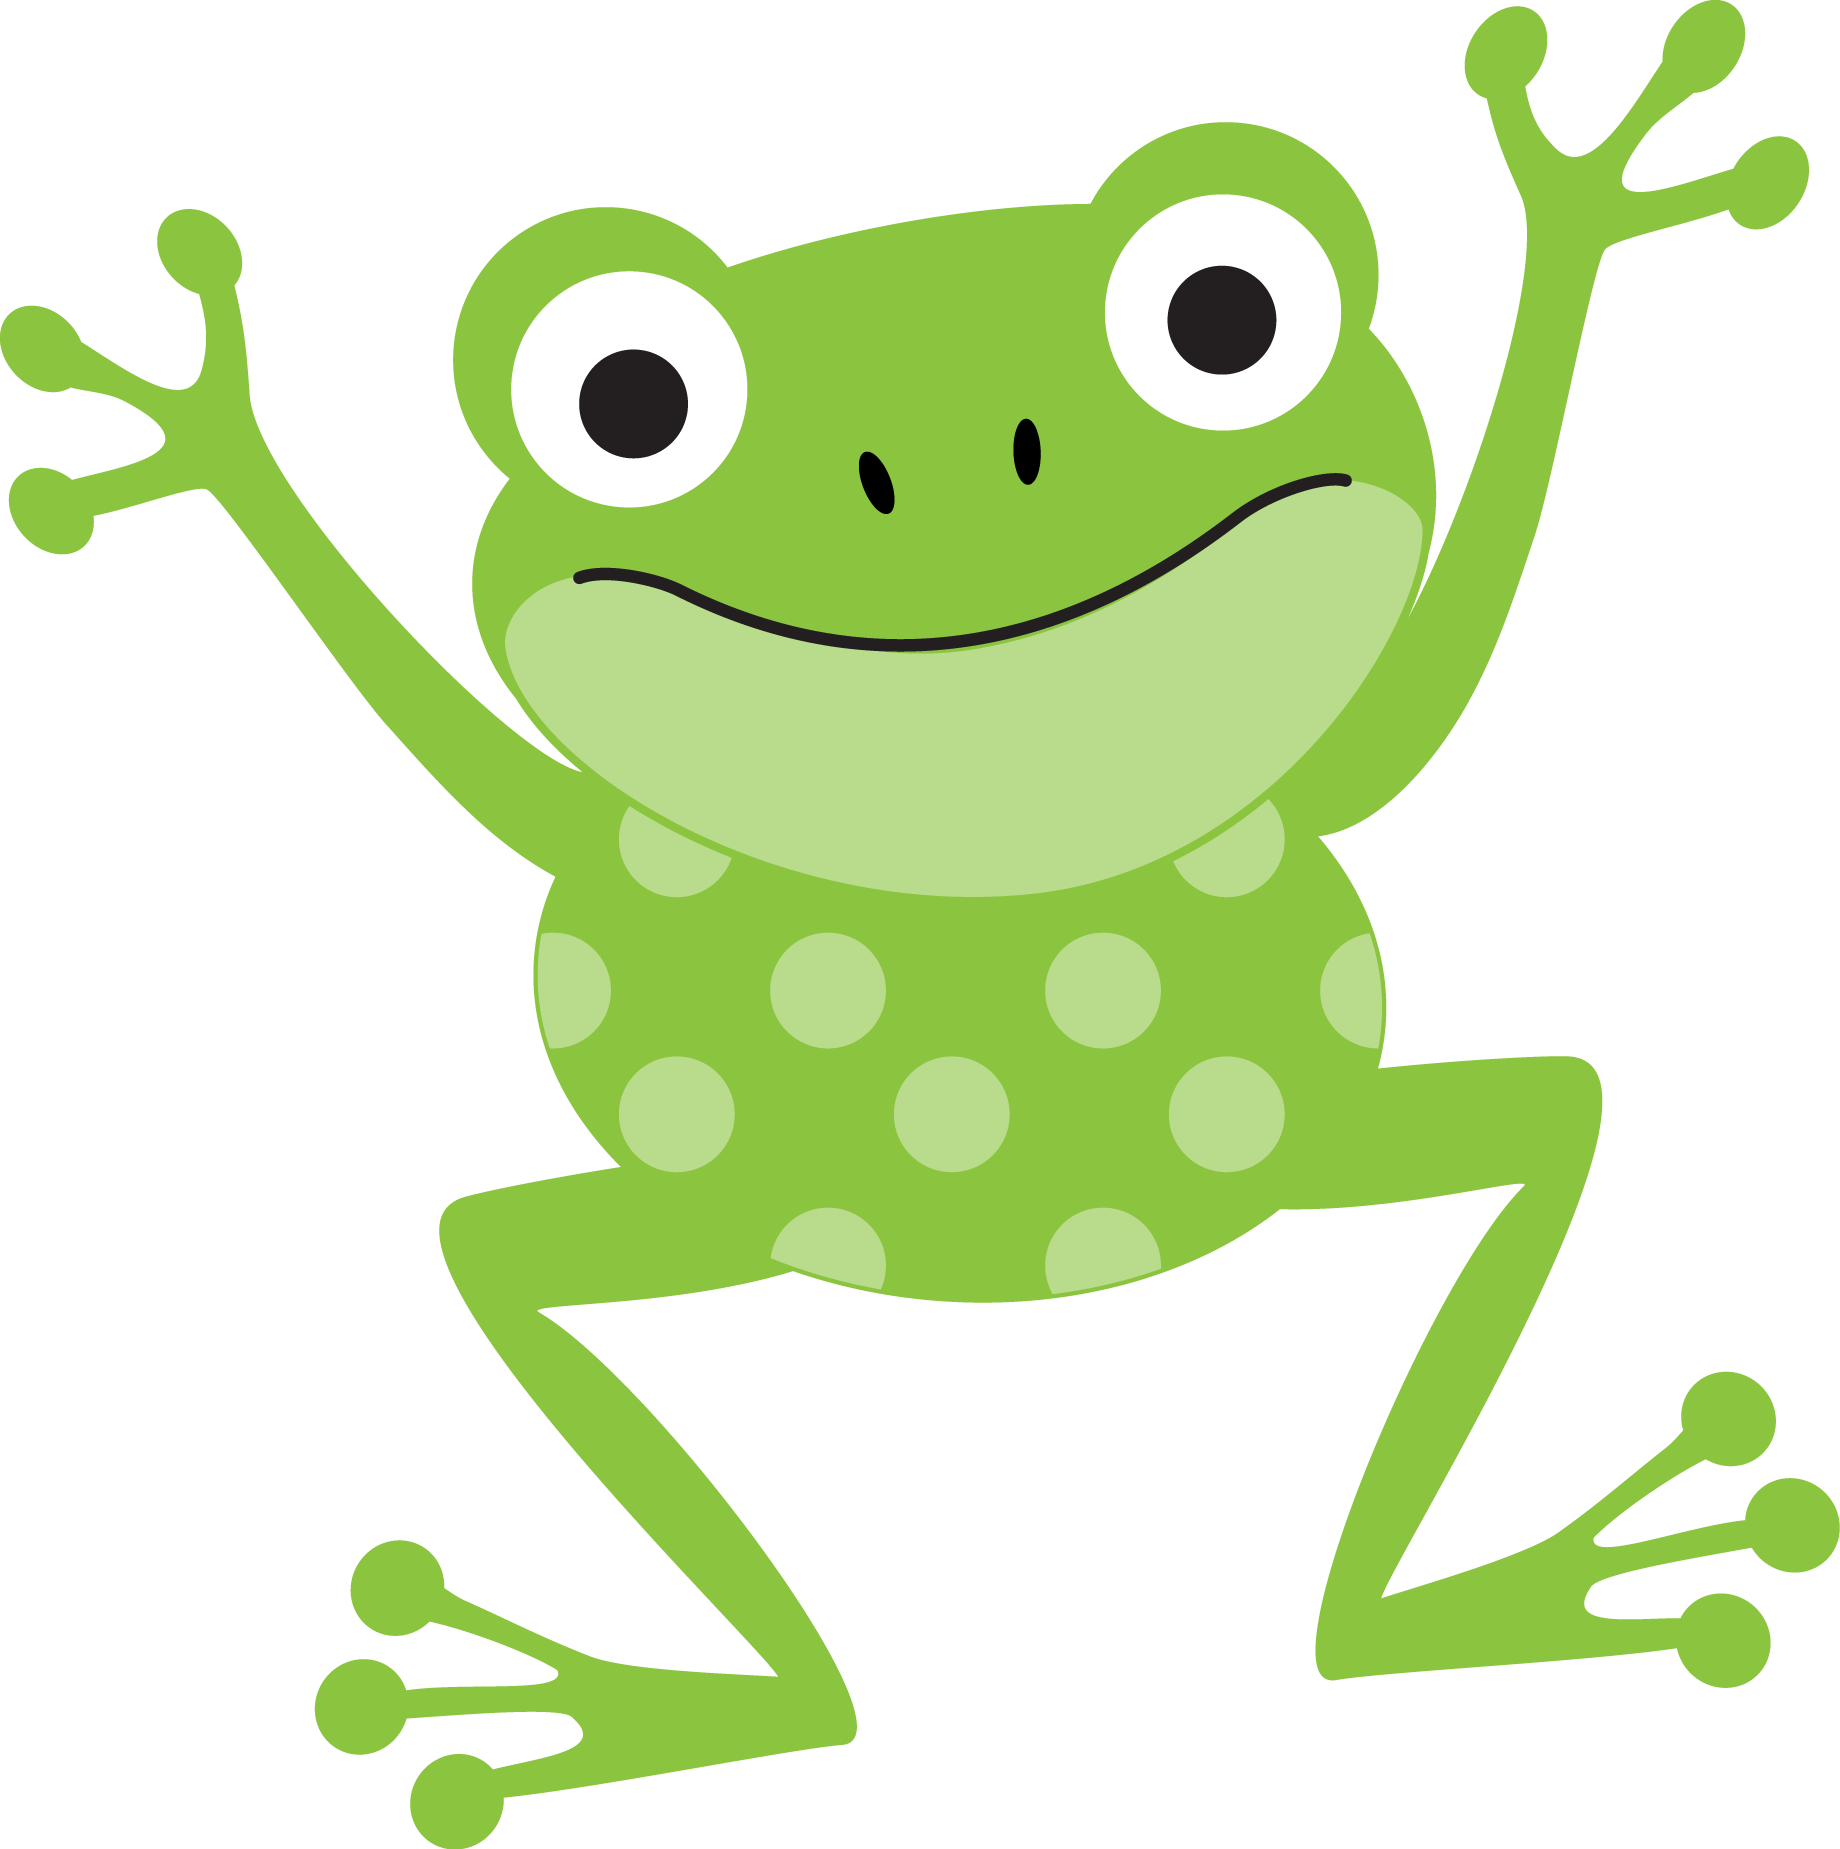 Costume clipart frog, Costume frog Transparent FREE for.